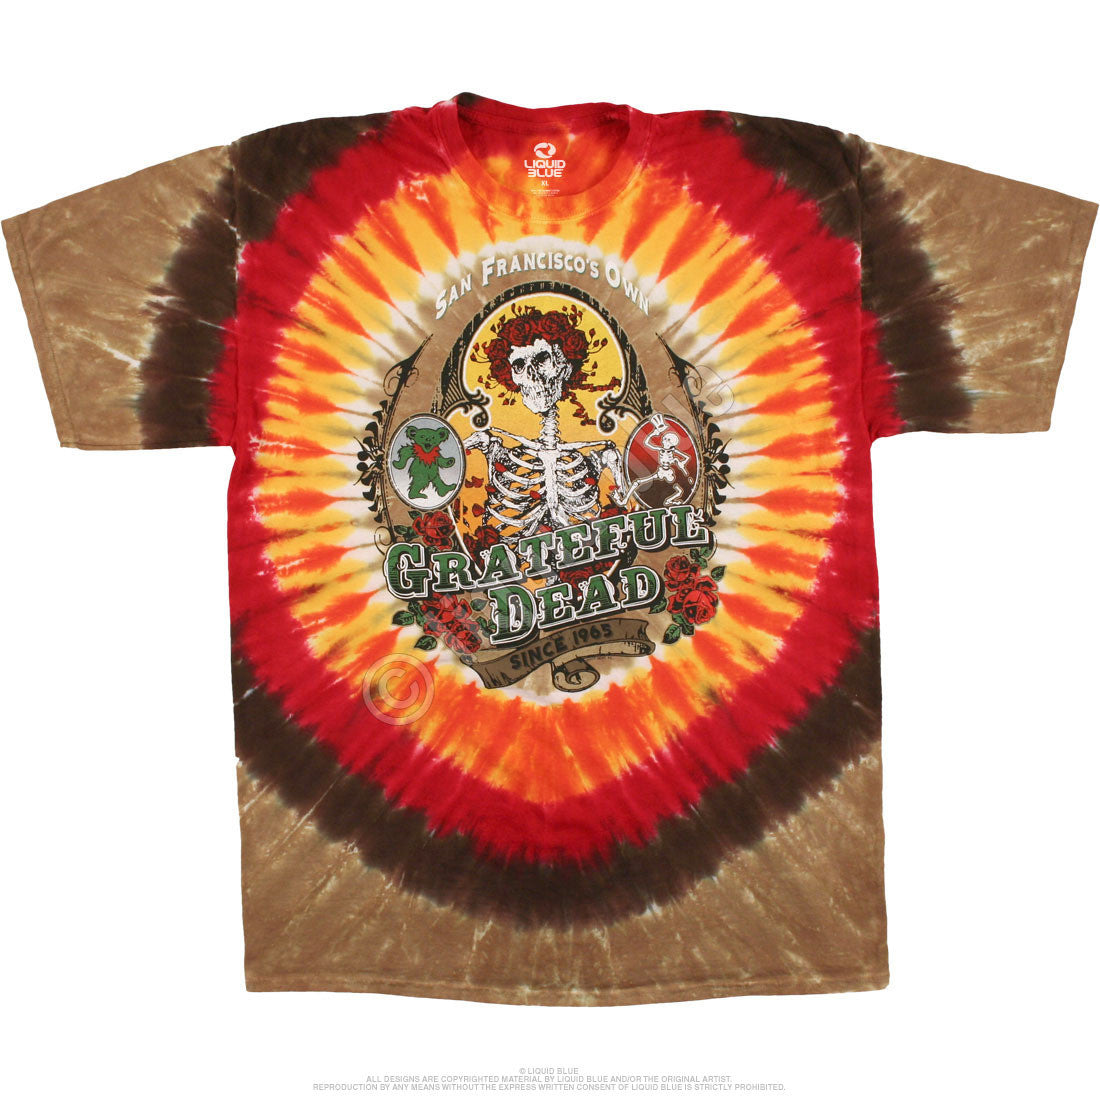 Bay Area Grateful Dead Tie Dye Shirt